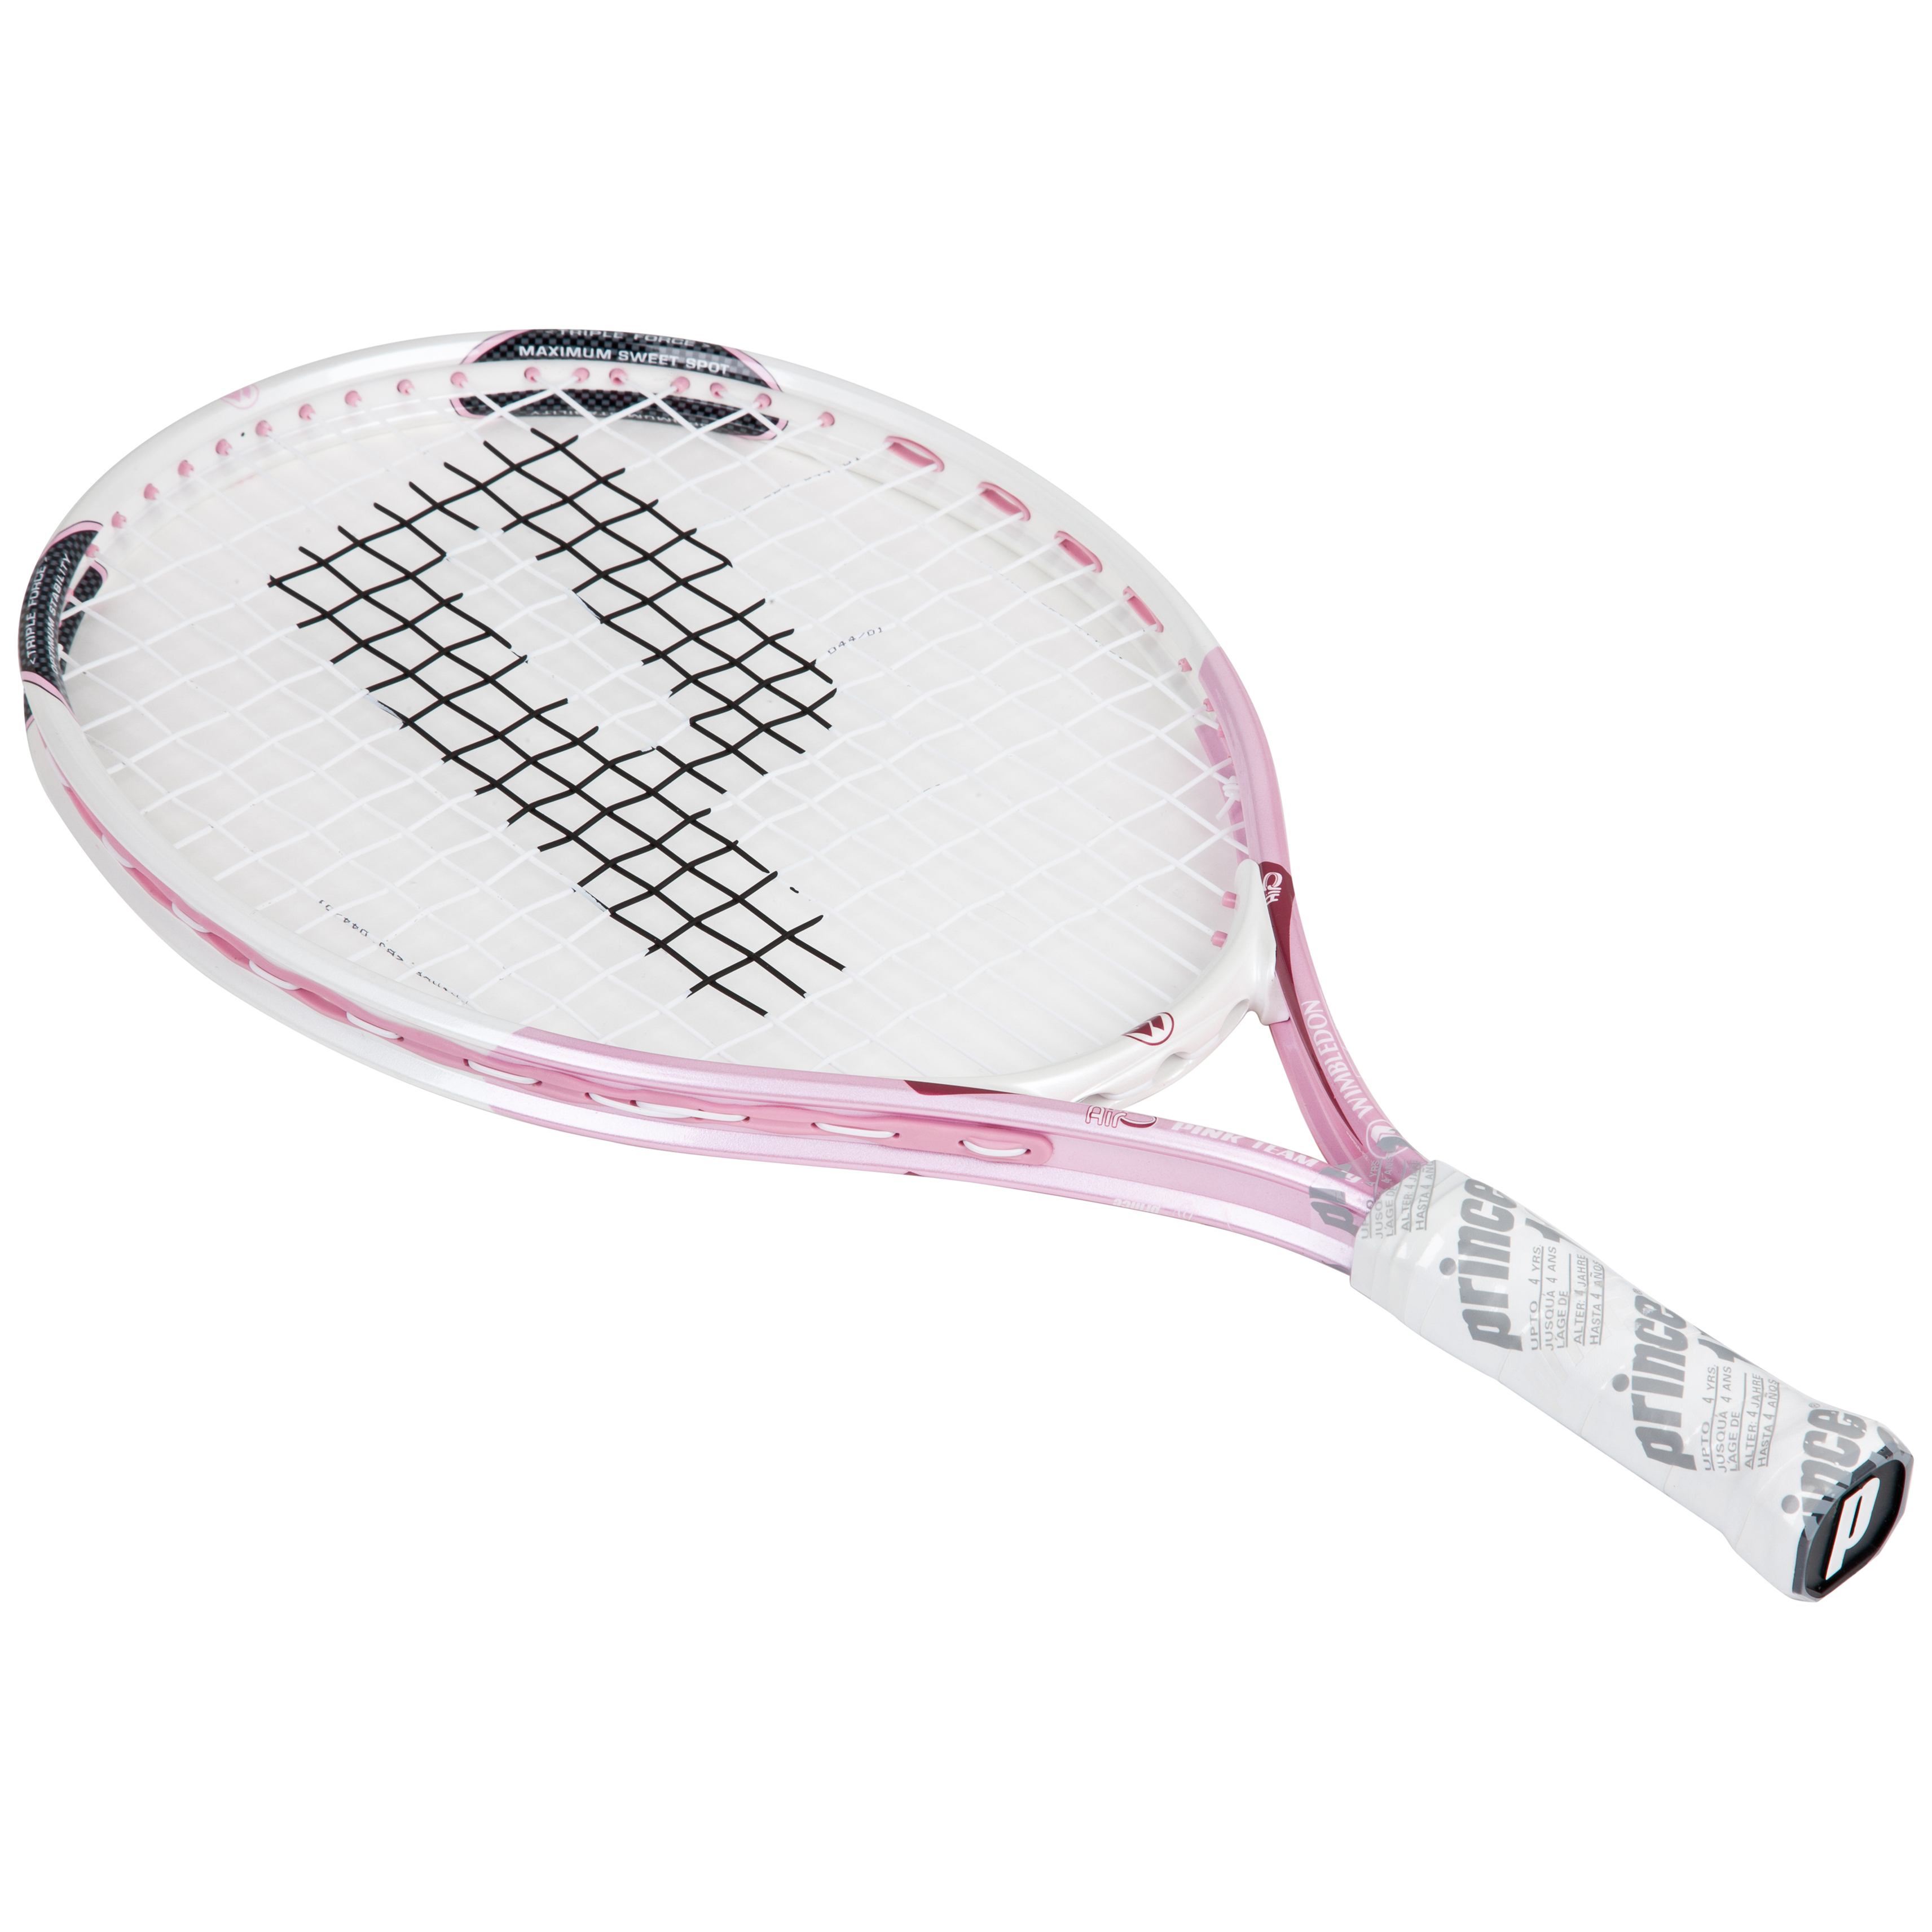 Wimbledon By Prince Airo Pink Team 19 Tennis Racket - White/Pink